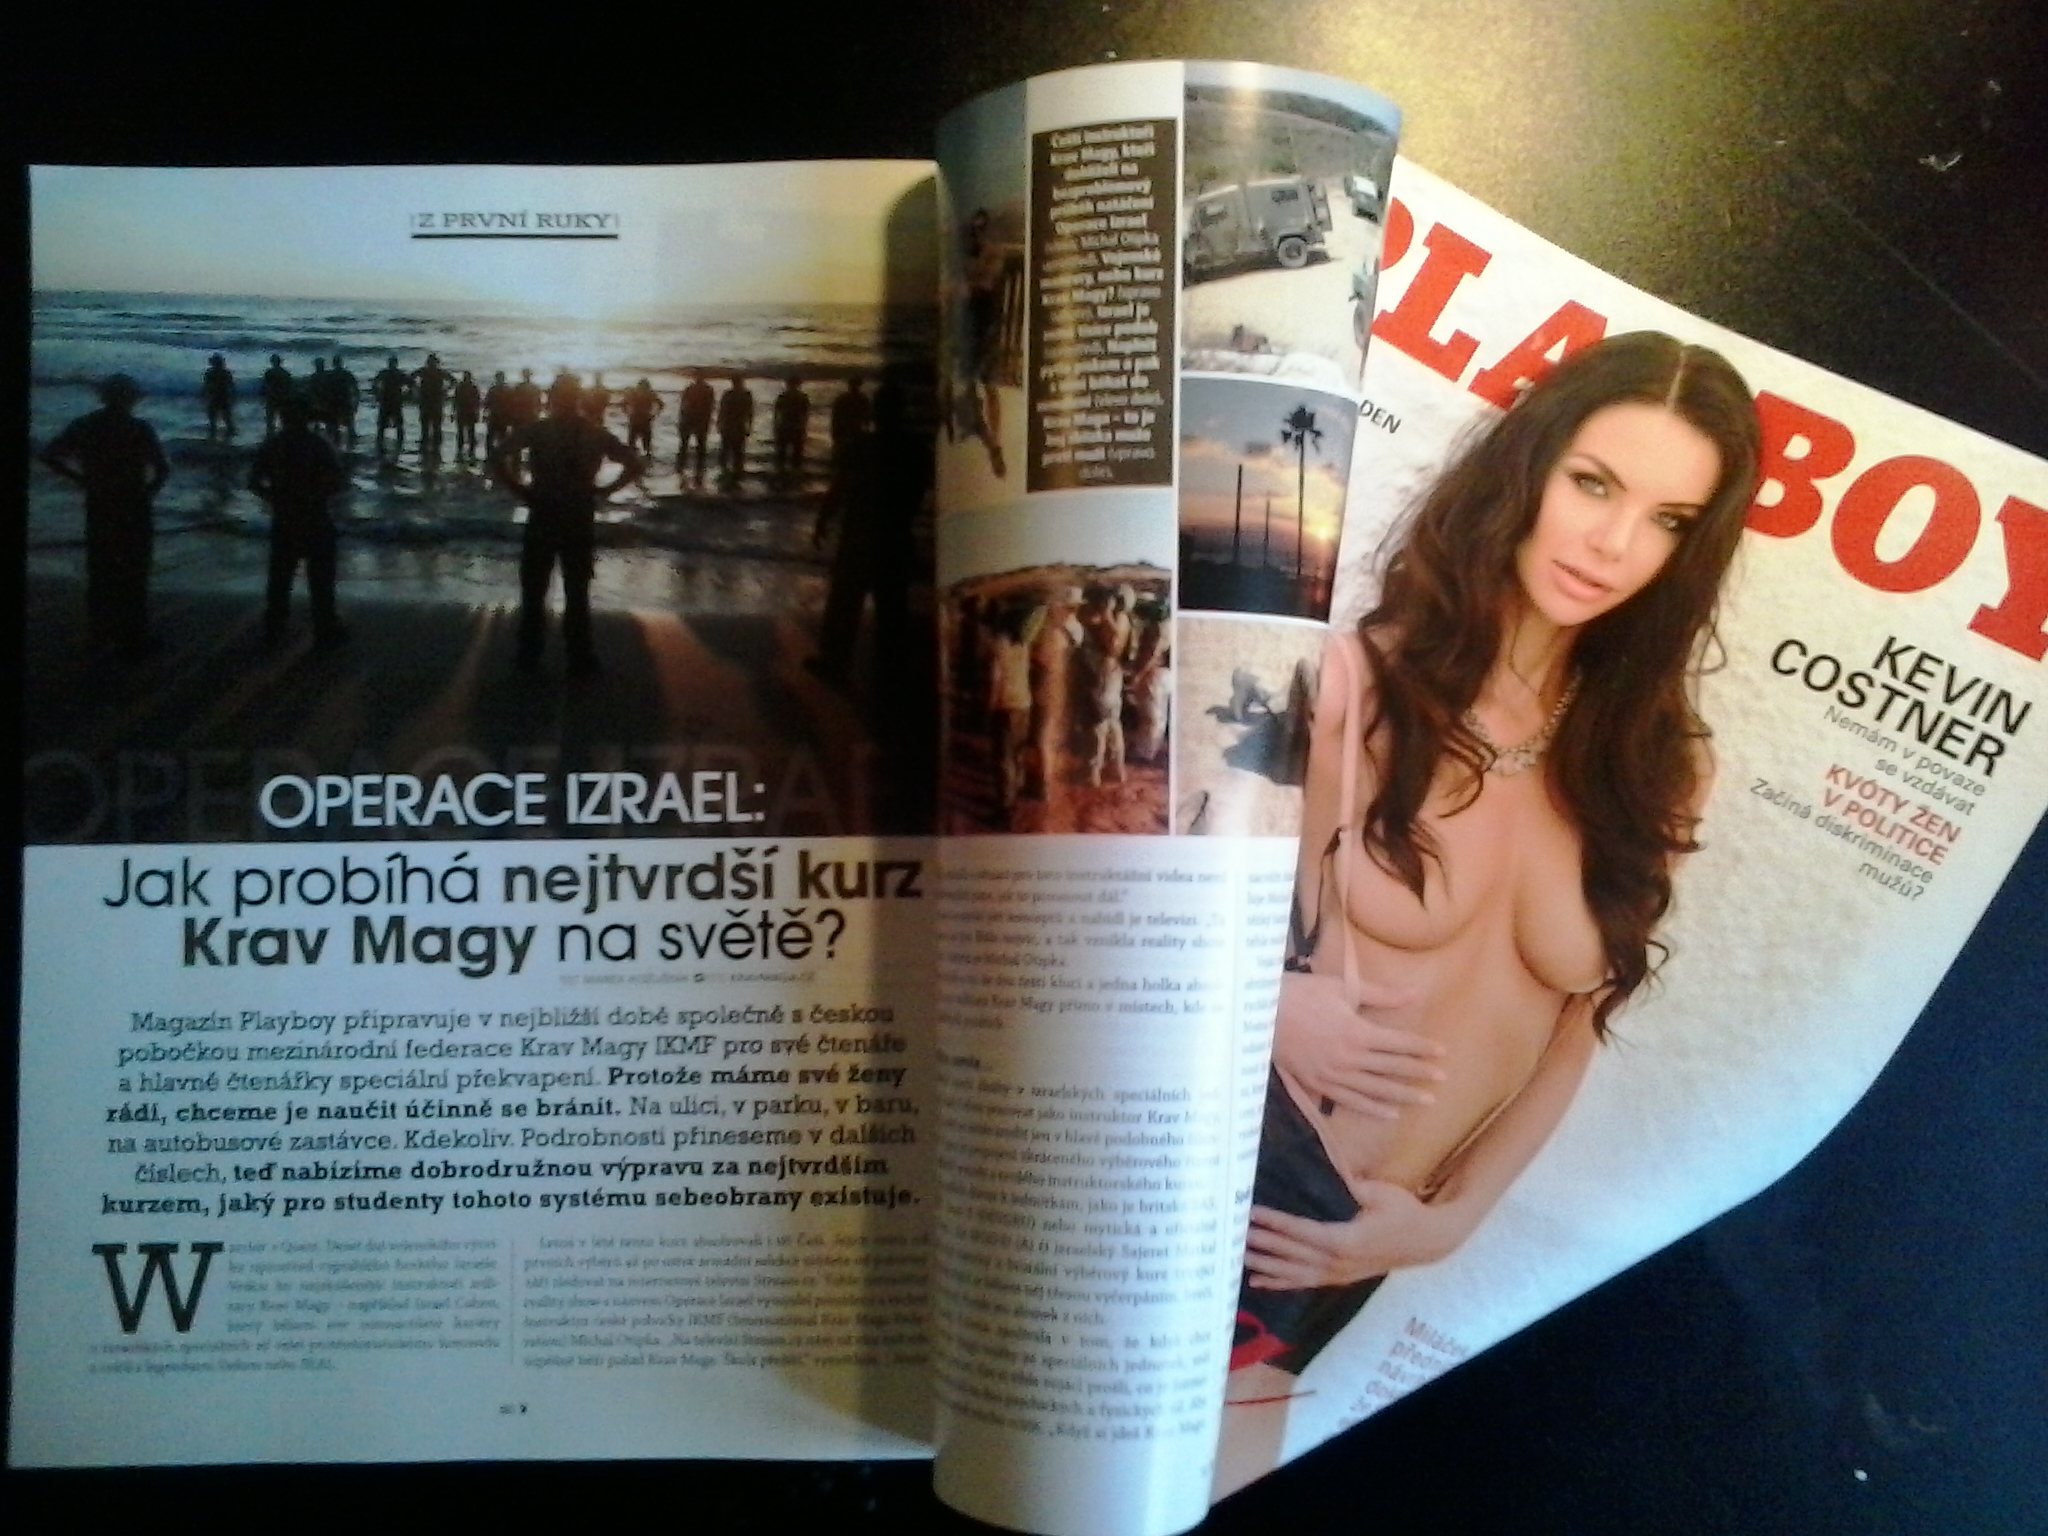 PS - TISK - Playboy mich - OPERACE IZRAEL REP